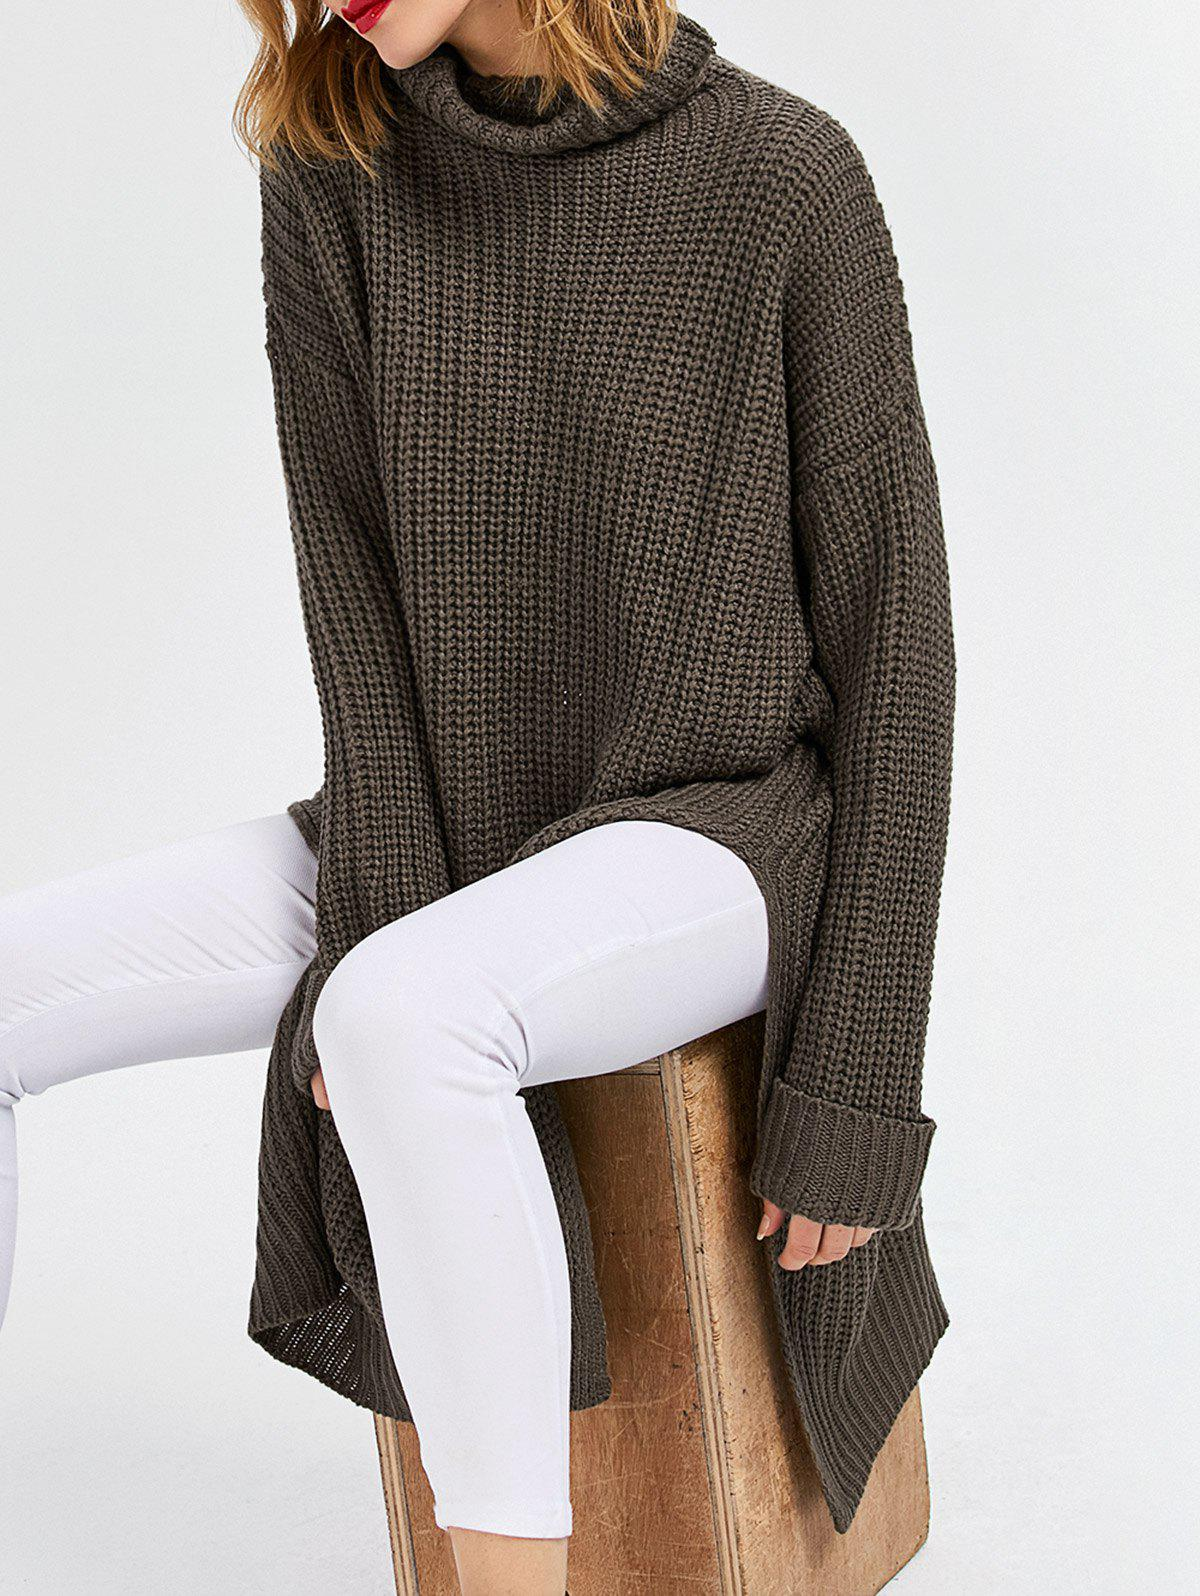 Cowl Neck Slit Ribbed Sweater inc new black women s p petite ribbed cowl neck studded tunic sweater $69 071